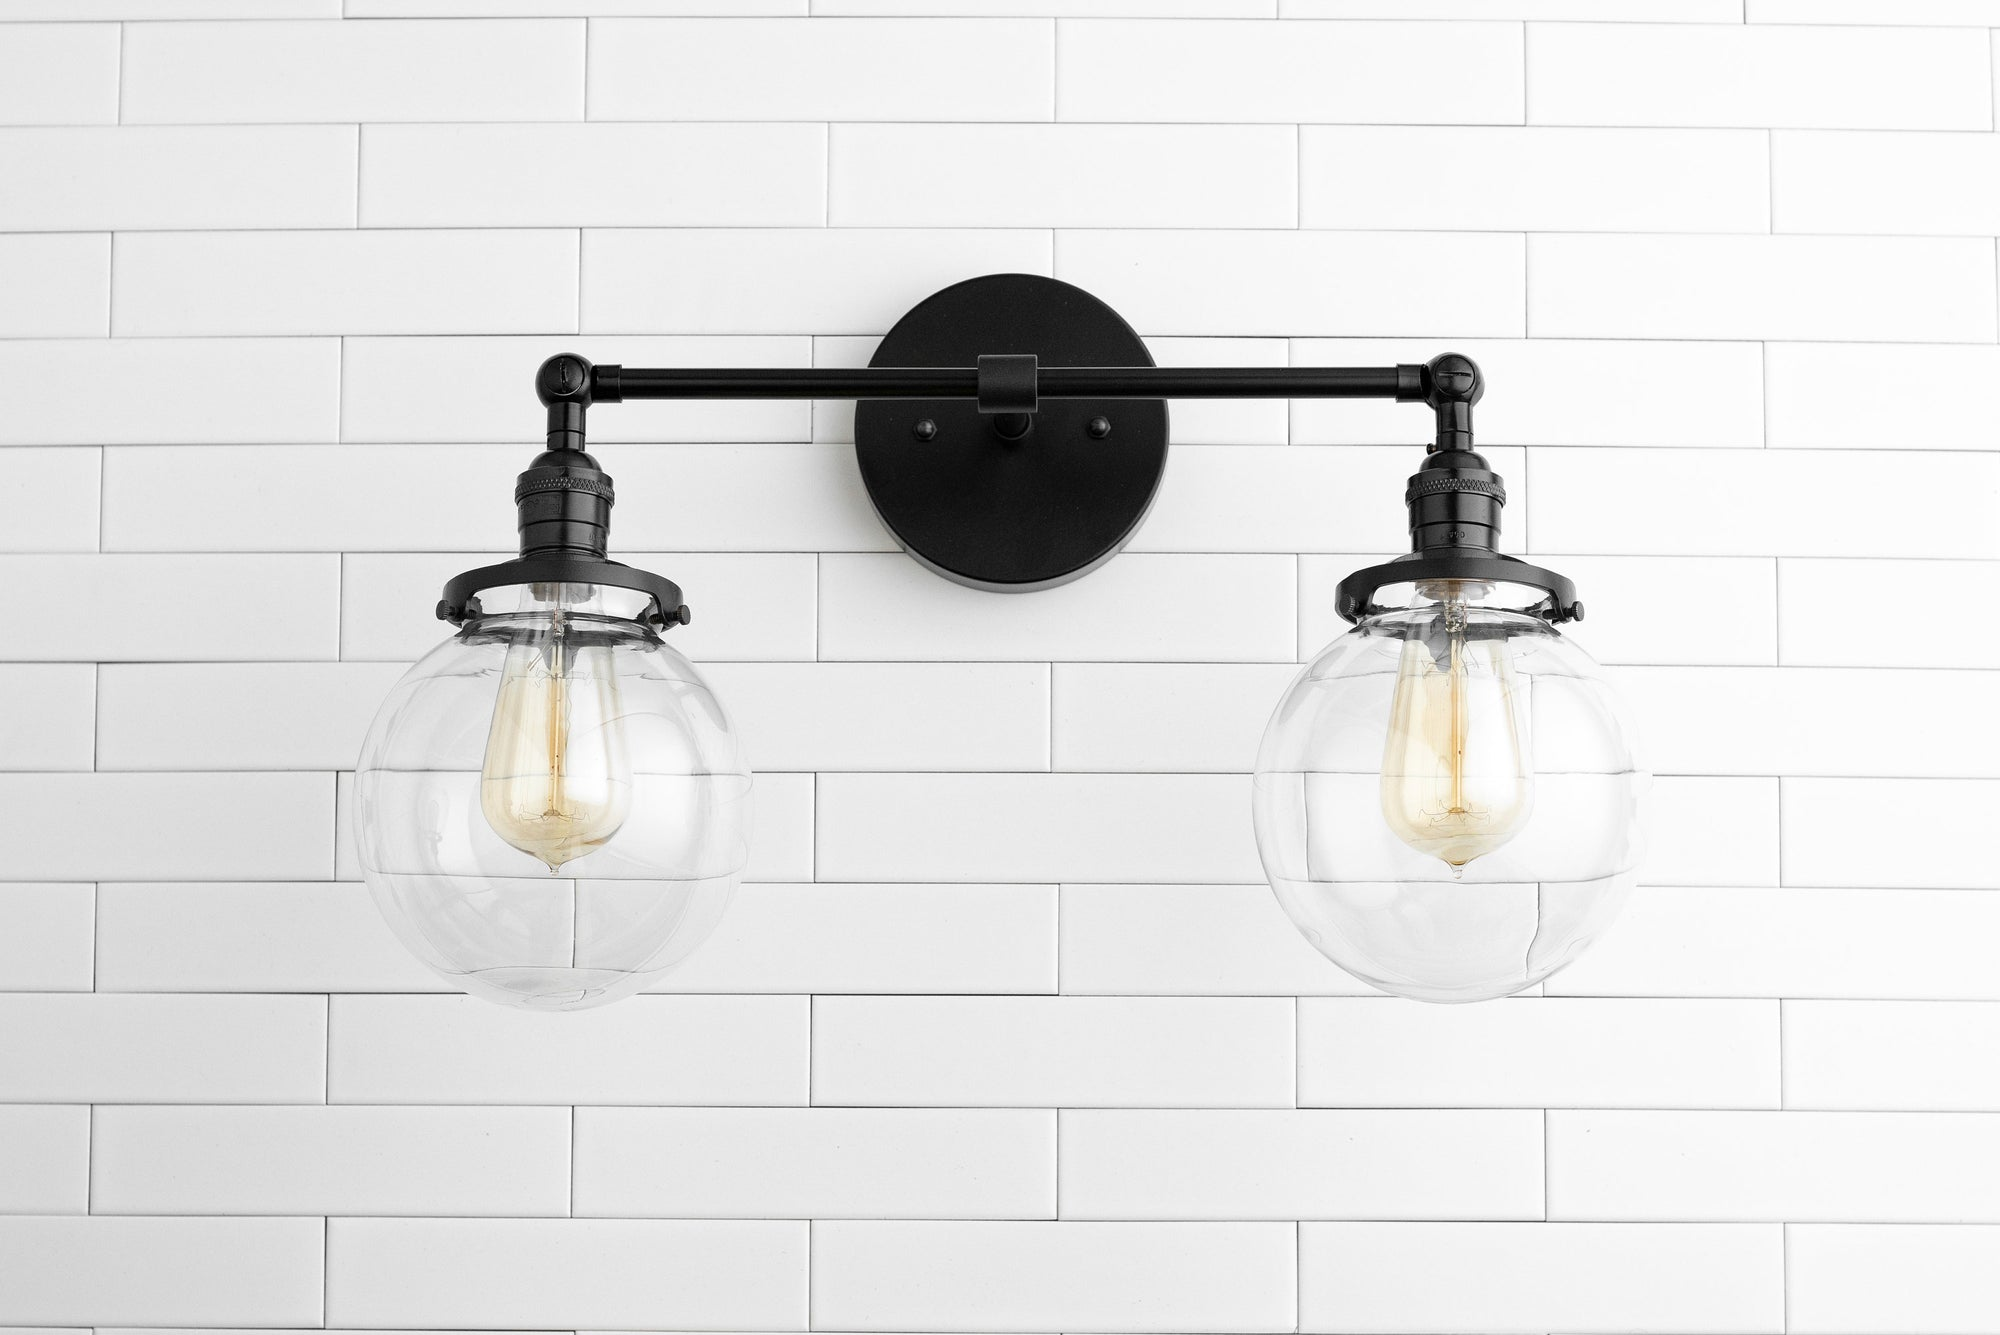 new concept fba2c 5faac Clear Globe Light - Globe Vanity Light - Black Light Fixture - Bathroom  Lighting - Farmhouse Light - Industrial Light - Vanity Lighting